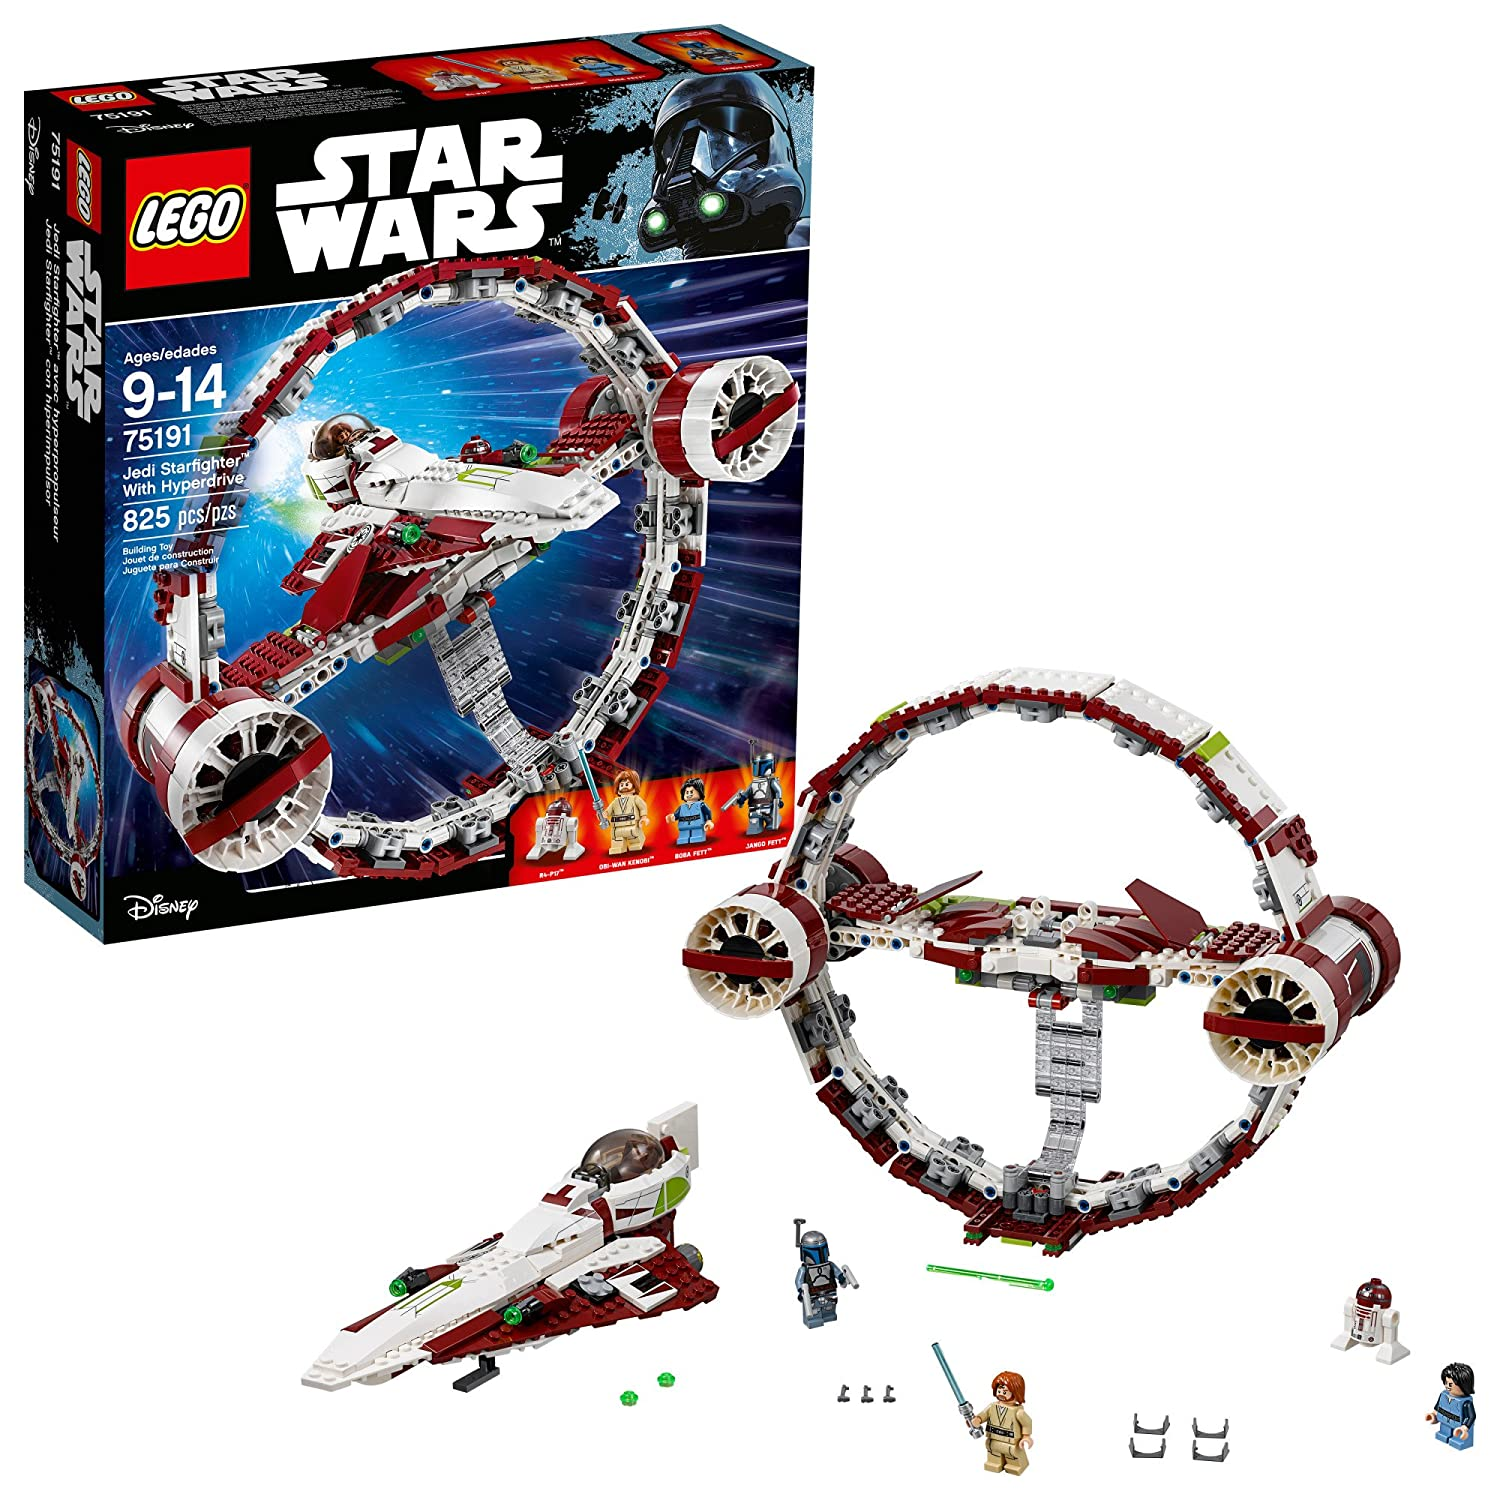 LEGO 6175769 Star Wars Jedi Starfighter with Hyperdrive 75191 Building Kit (825 Piece)